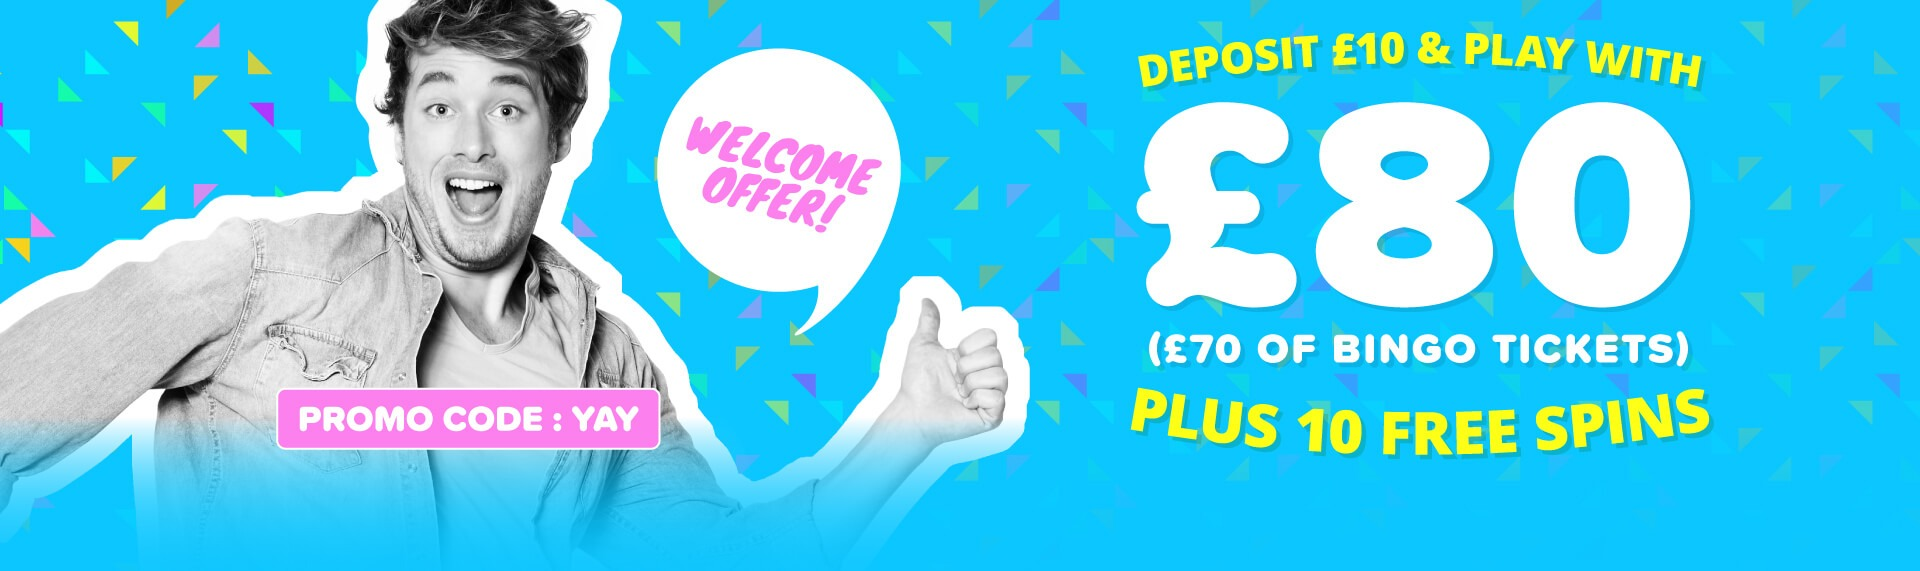 Yay Bingo Welcome Offer